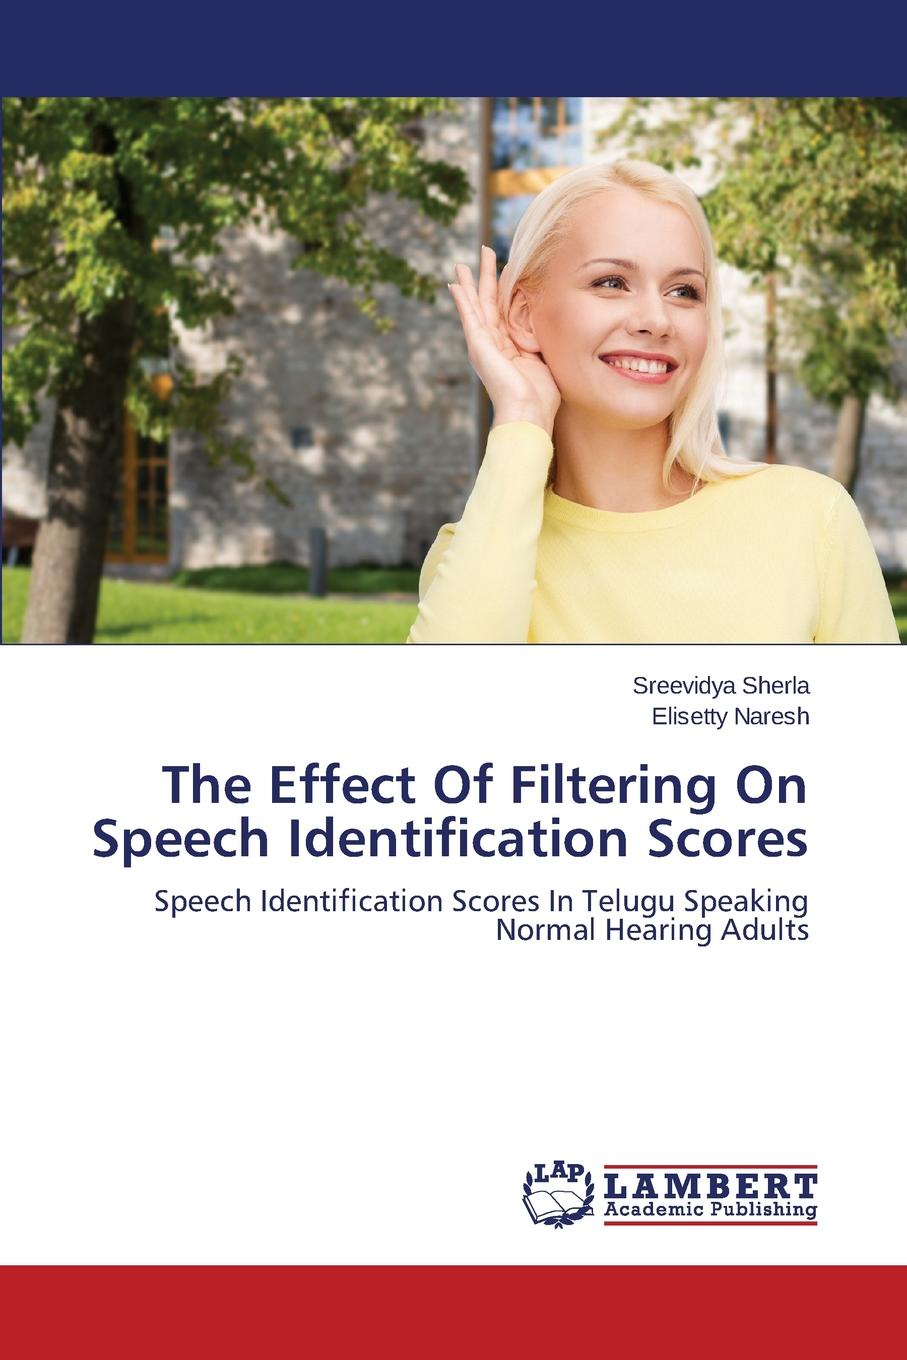 Sherla Sreevidya, Naresh Elisetty The Effect Of Filtering On Speech Identification Scores low cut high low hem blouse